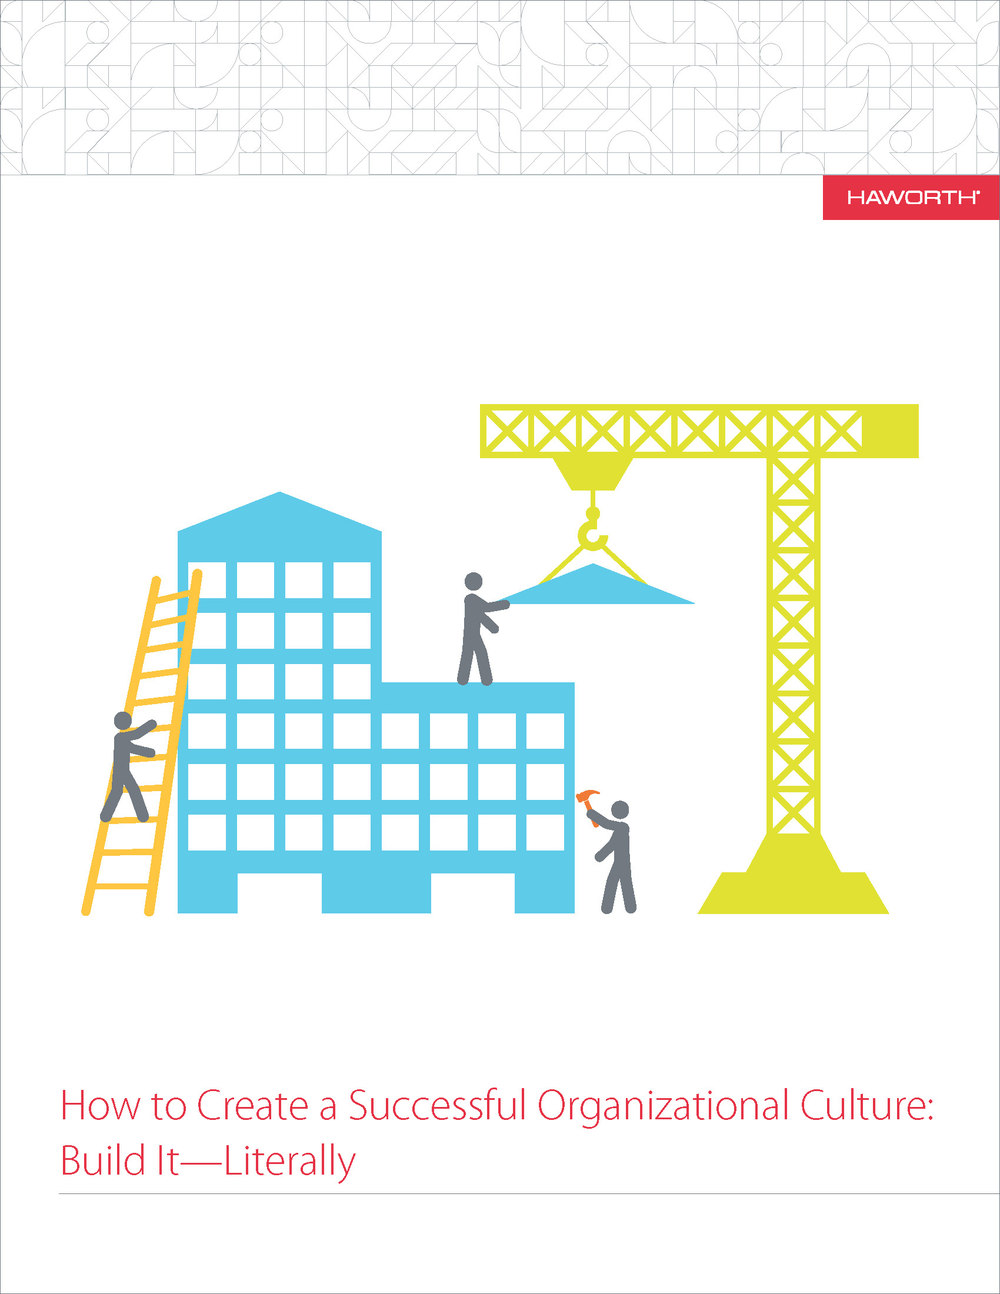 How to Create a Successful Organizational Culture: Build It-Literally: courtesy of Haworth